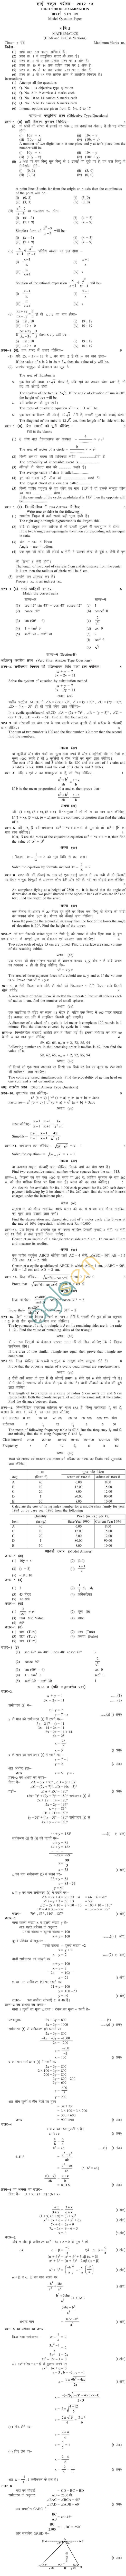 MP Board Class X Mathematics Model Questions & Answers - Set 2